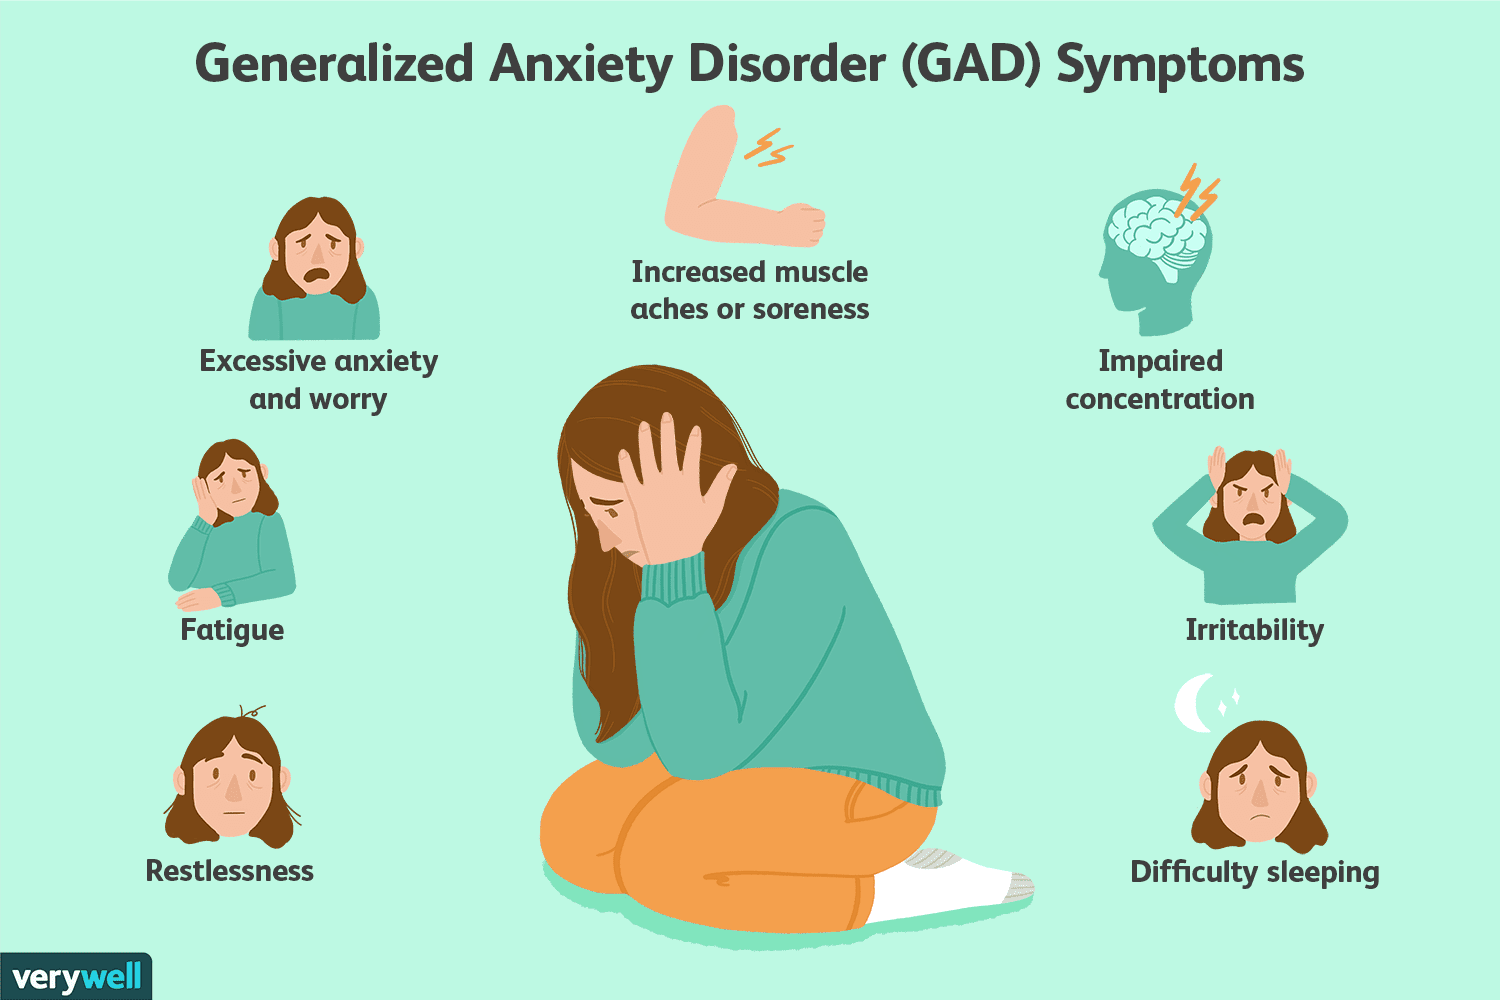 Dsm 5 Criteria For Diagnosing Generalized Anxiety Disorder